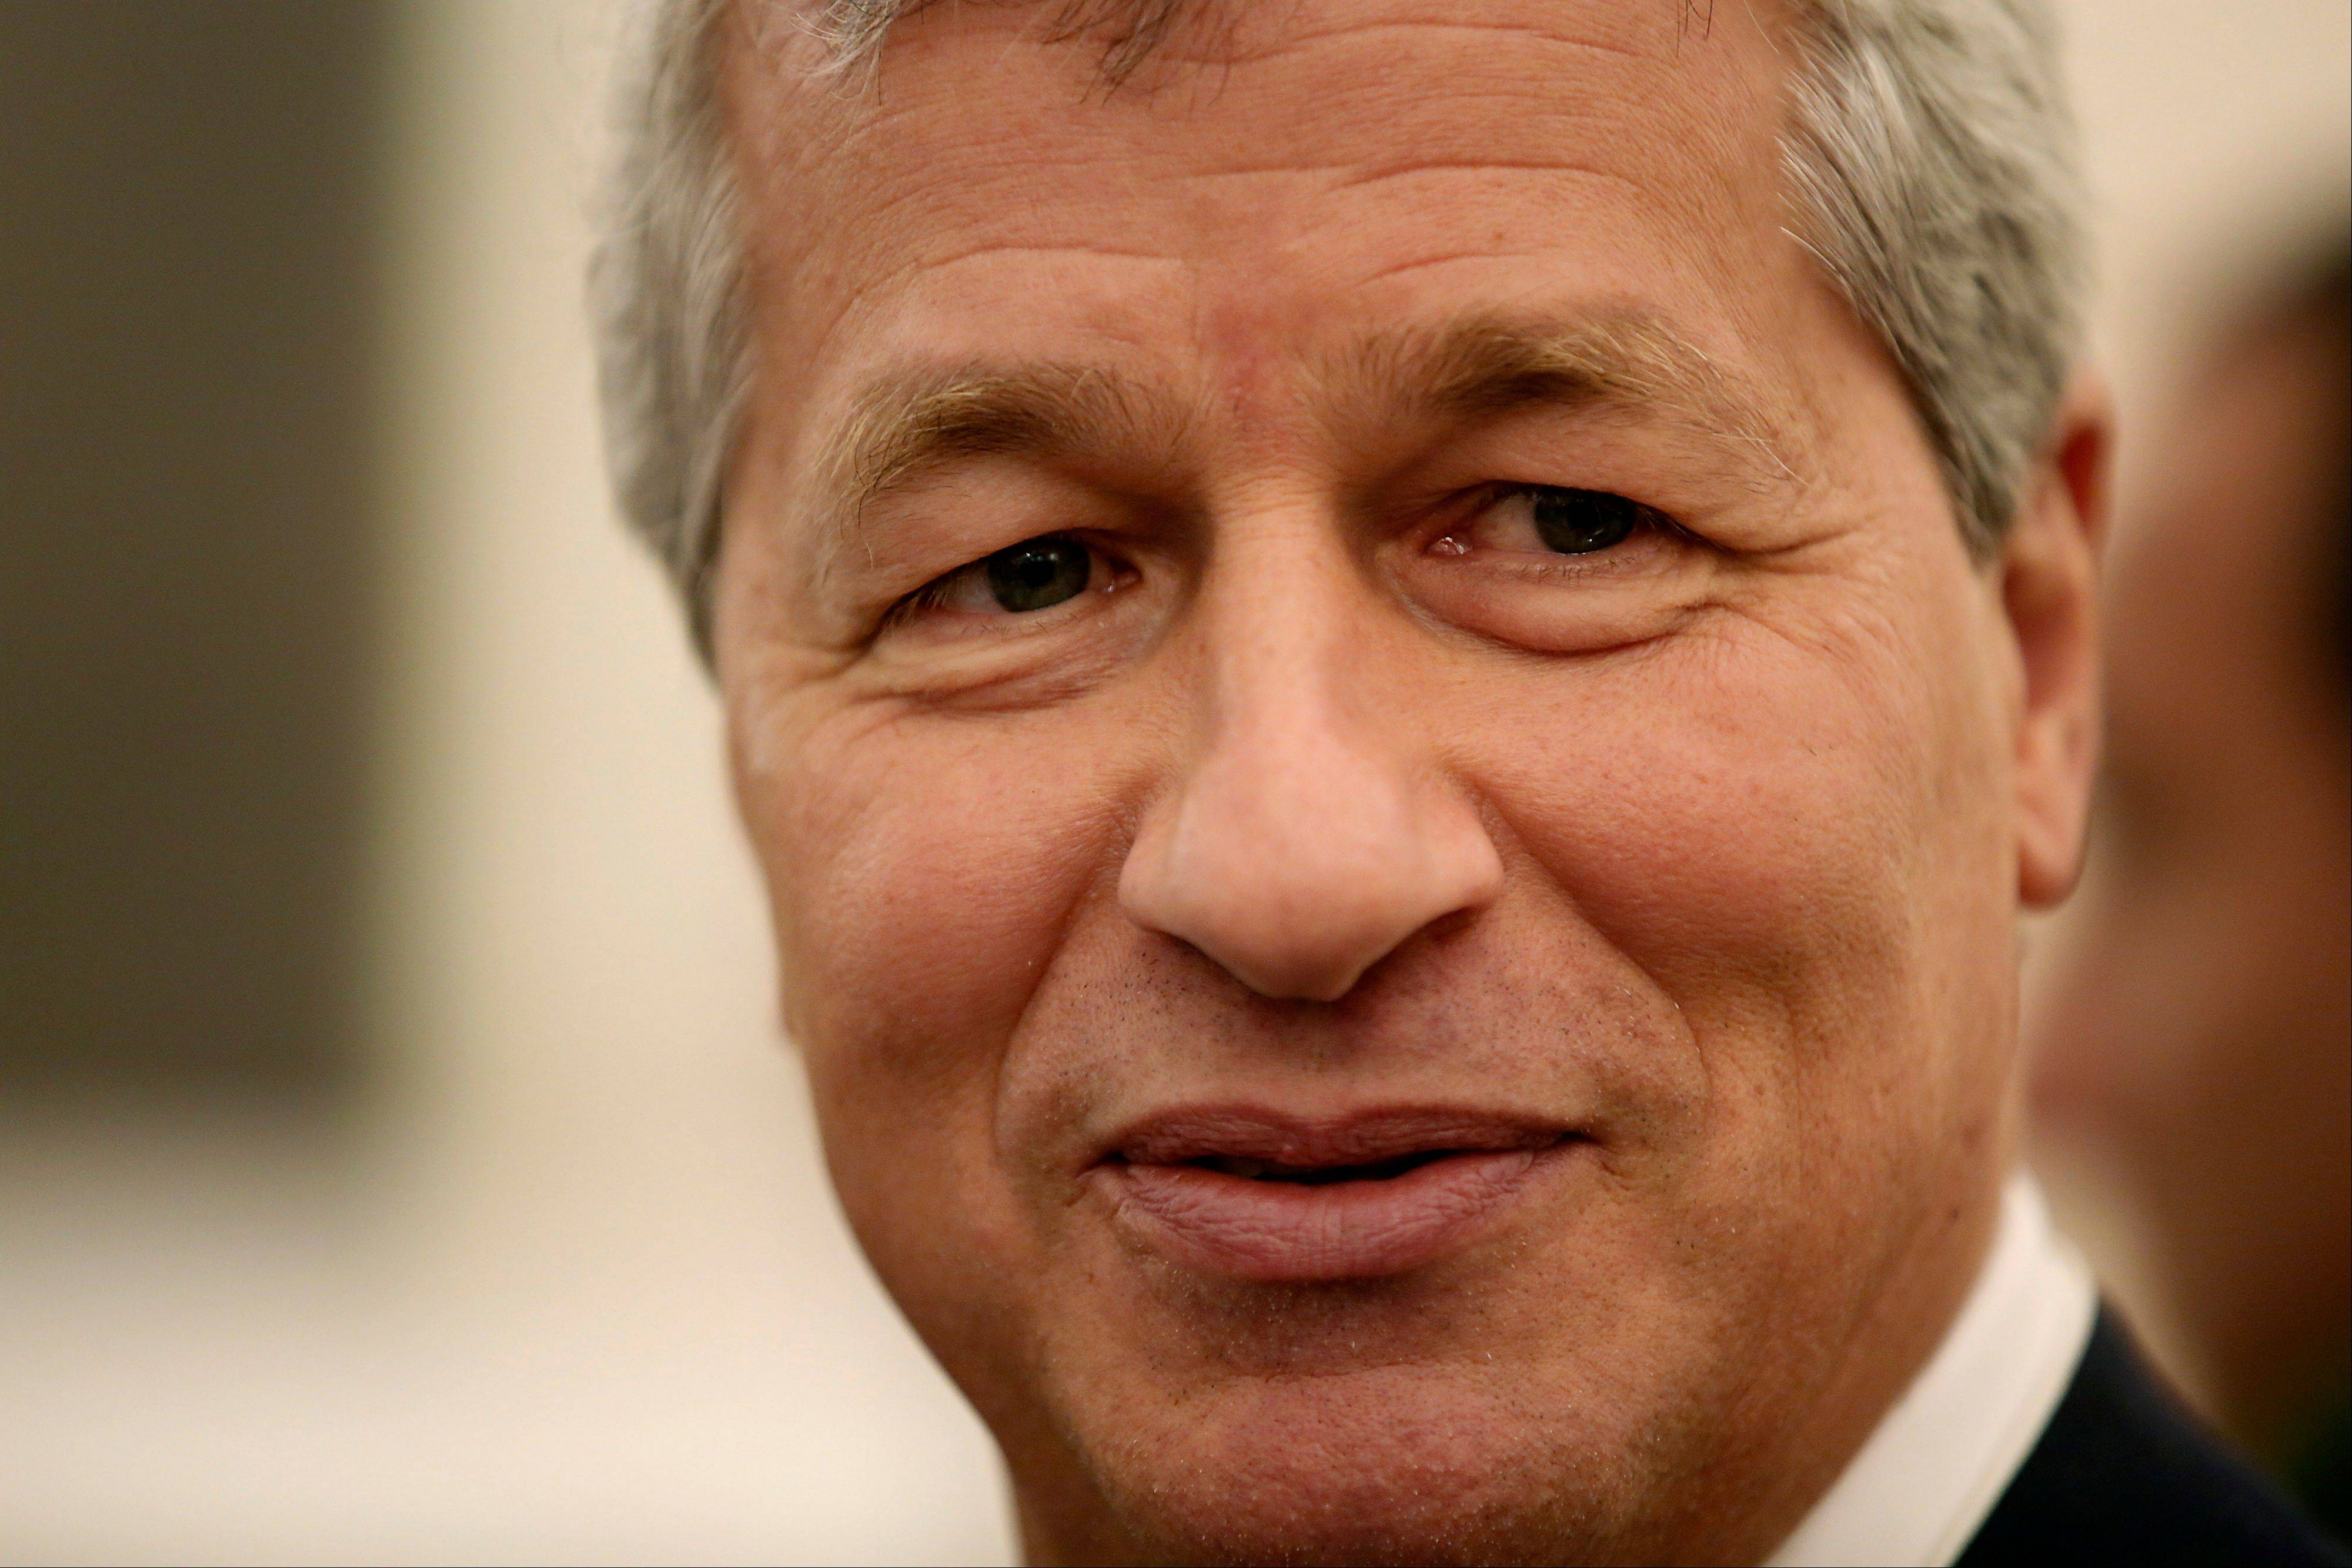 James �Jamie� Dimon, chief executive officer of JPMorgan Chase & Co., speaks to an attendee before a panel discussion on the opening day of the World Economic Forum (WEF) in Davos, Switzerland, Wednesday.